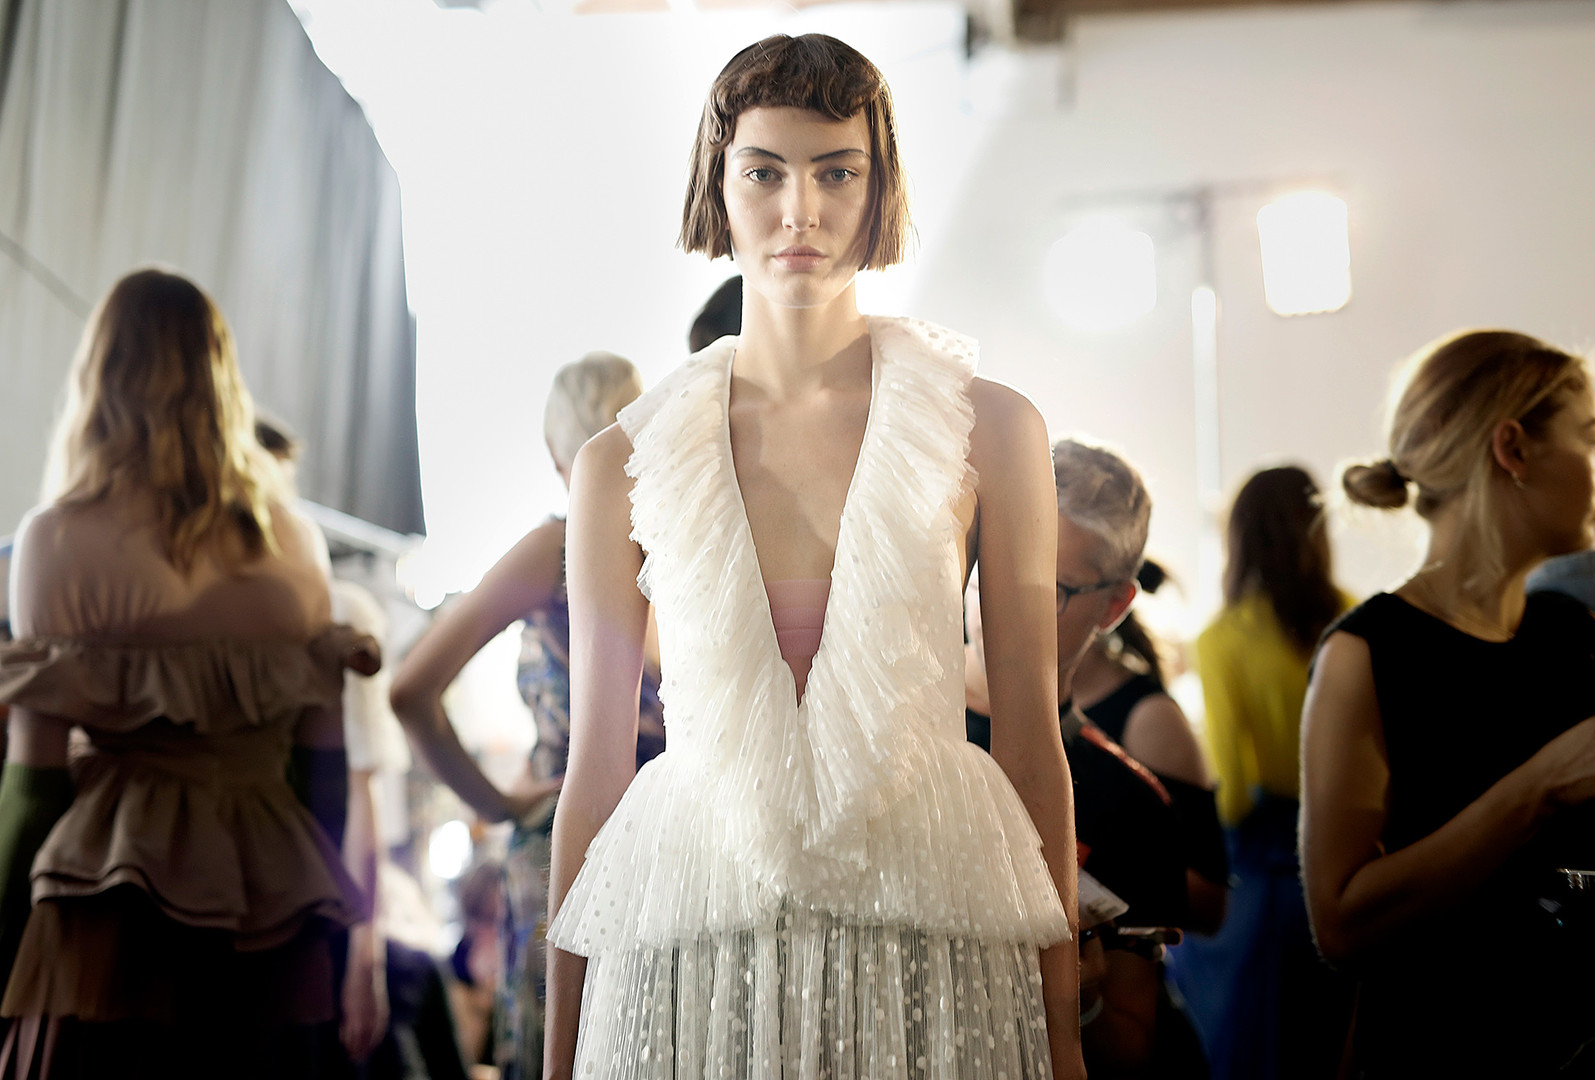 Model Ania Chiz poses prior the Rochas show as part of the Paris Fashion Week Womenswear Spring/Summer 2017 on September 28, 2016 in Paris, France